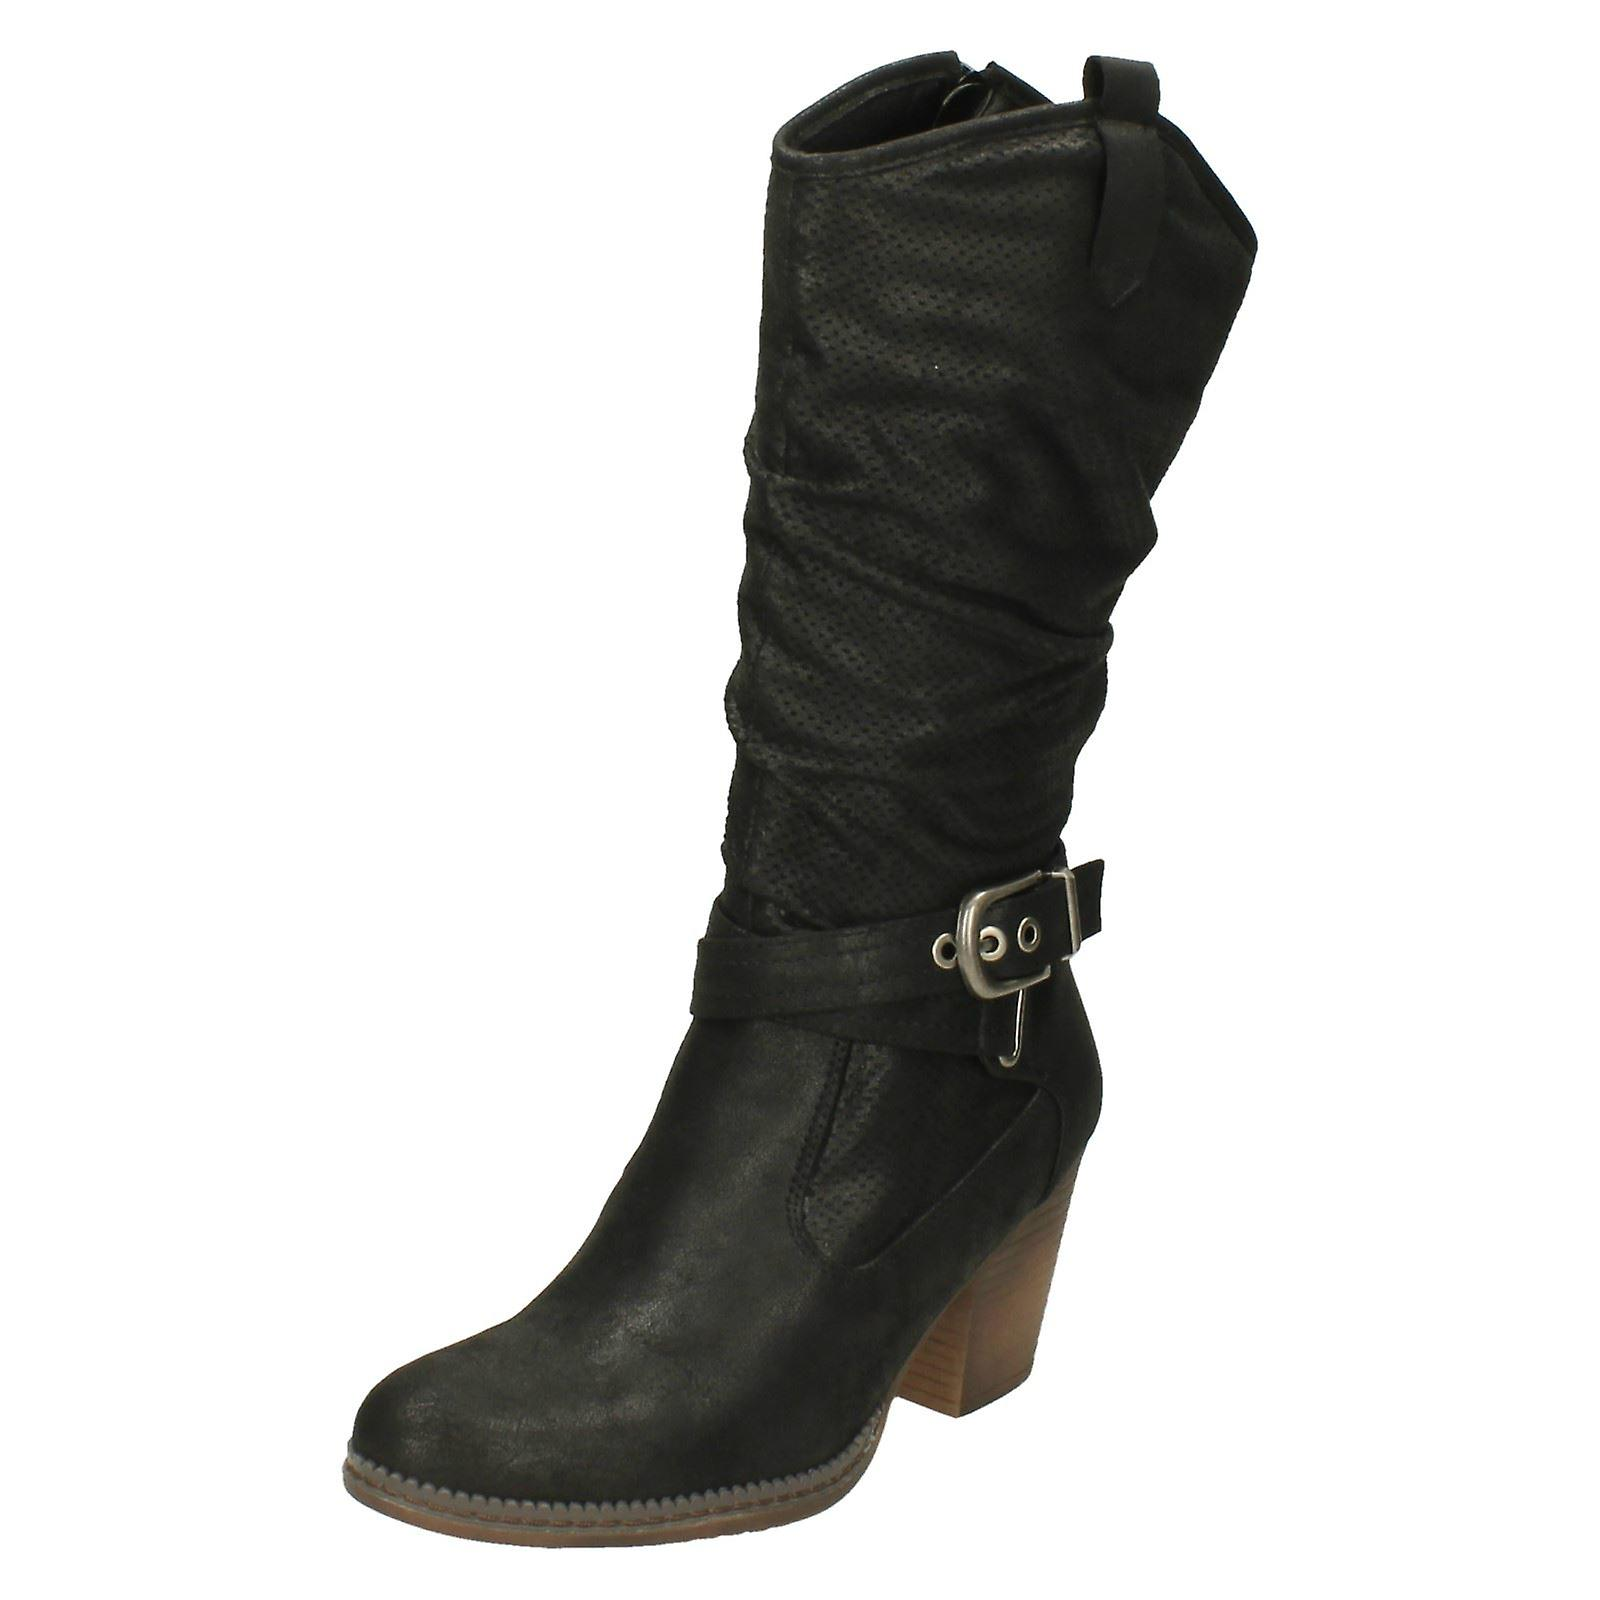 Ladies Down To Earth Calf Length Boots m6vlq